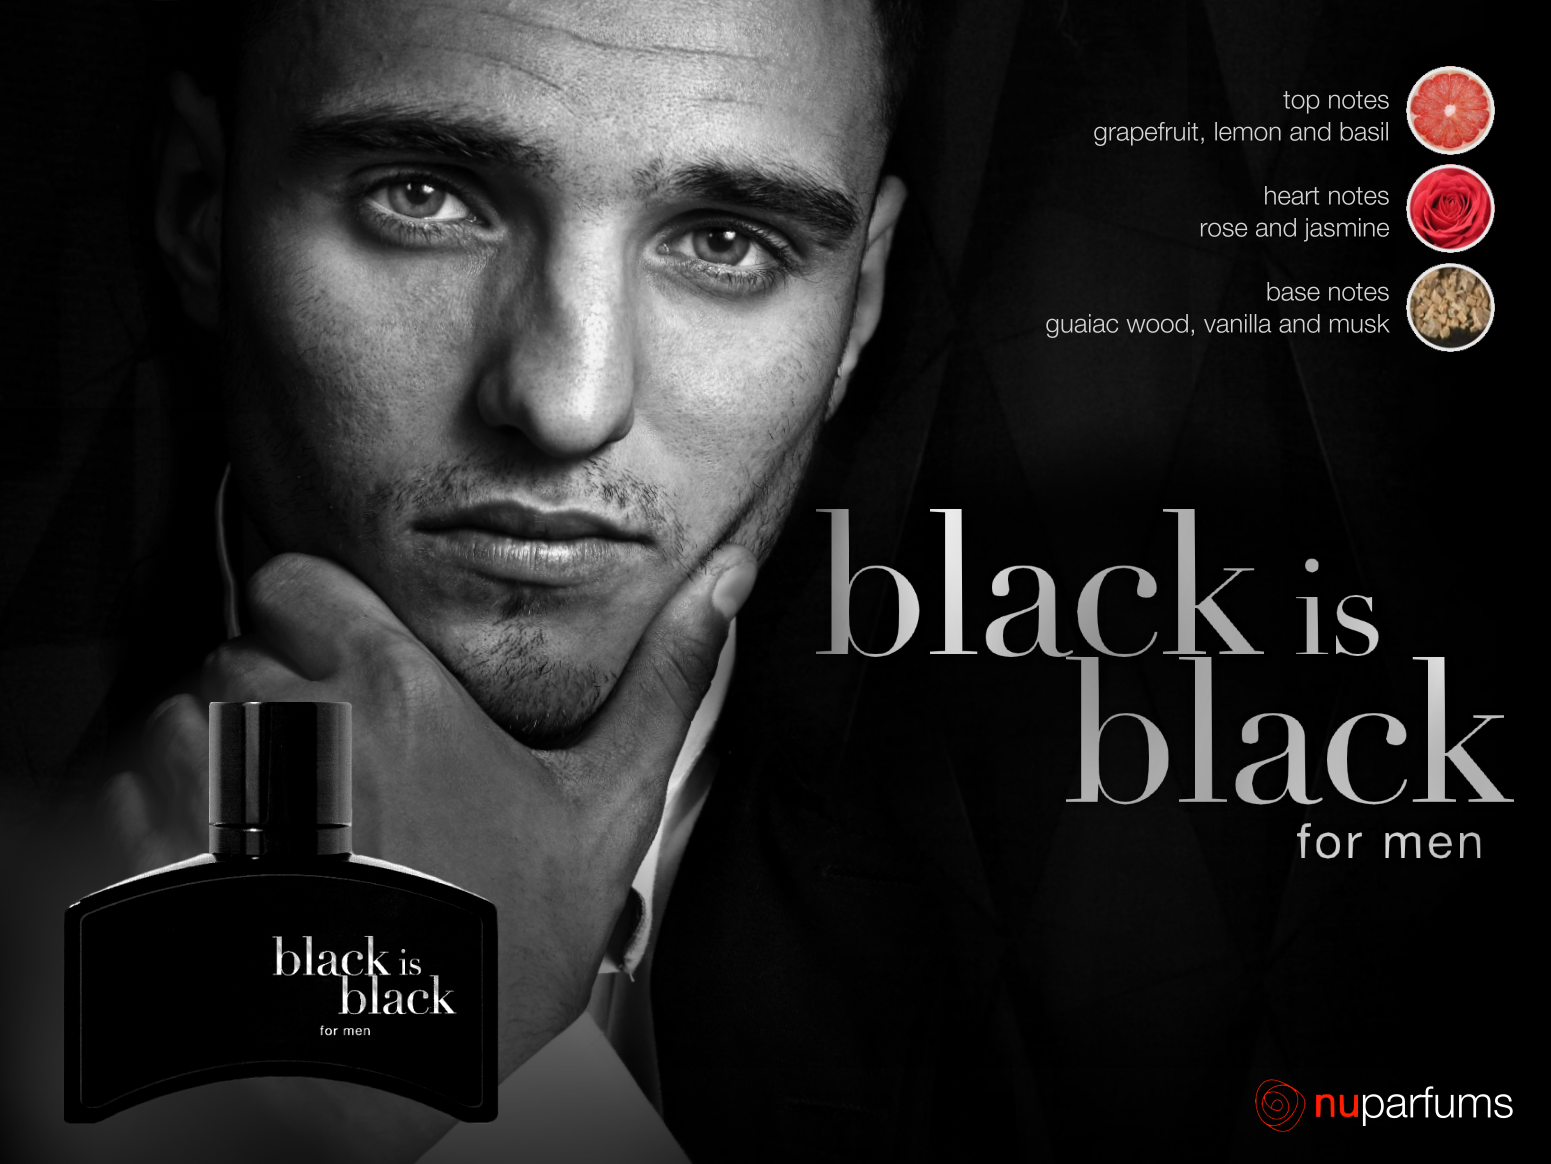 black is black for men